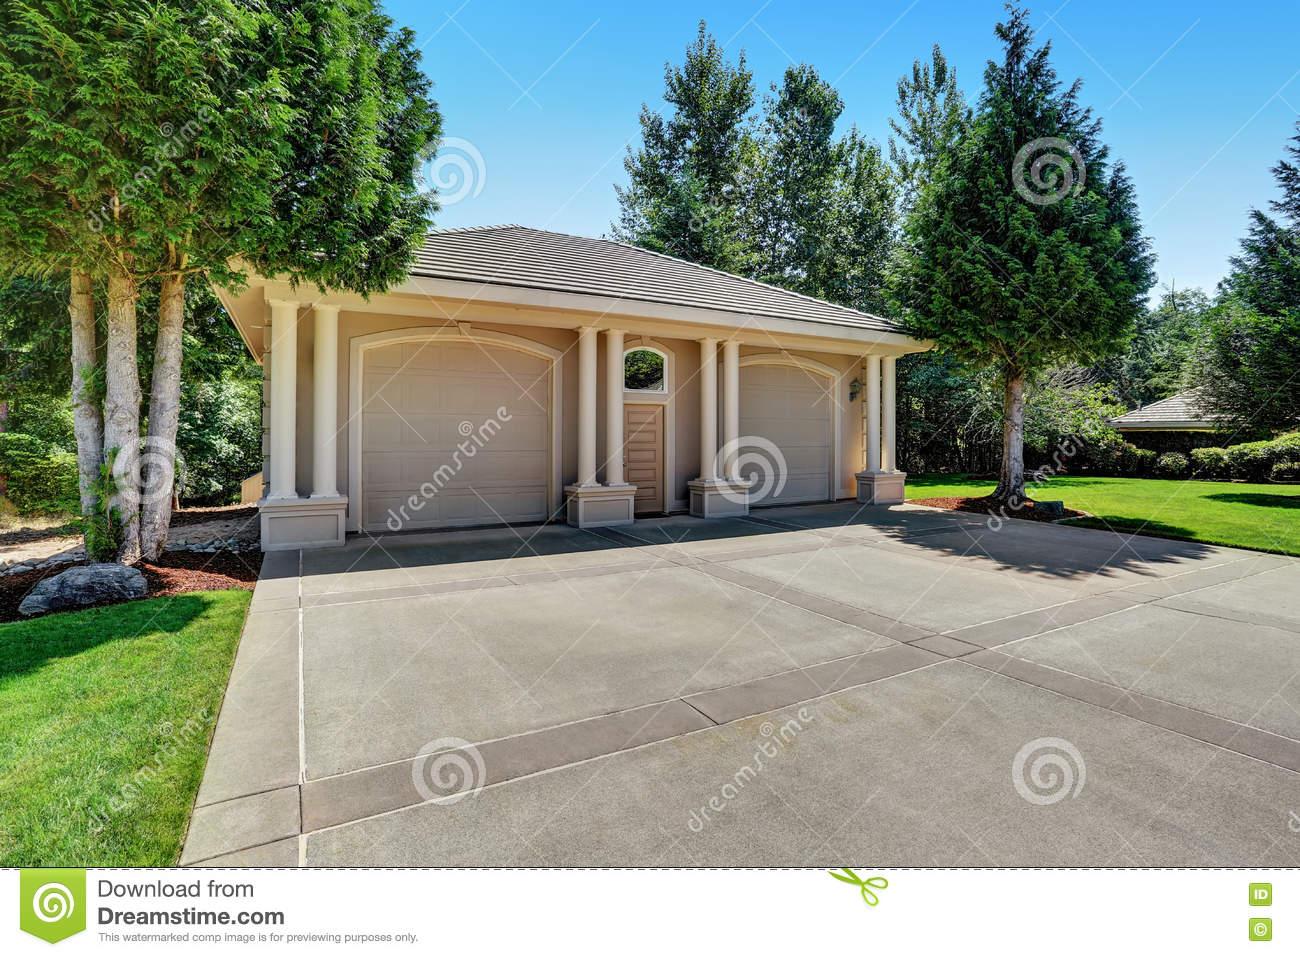 Detached Double Doors Garage With Columns Stock Photo Image Of Green Stone 77540156